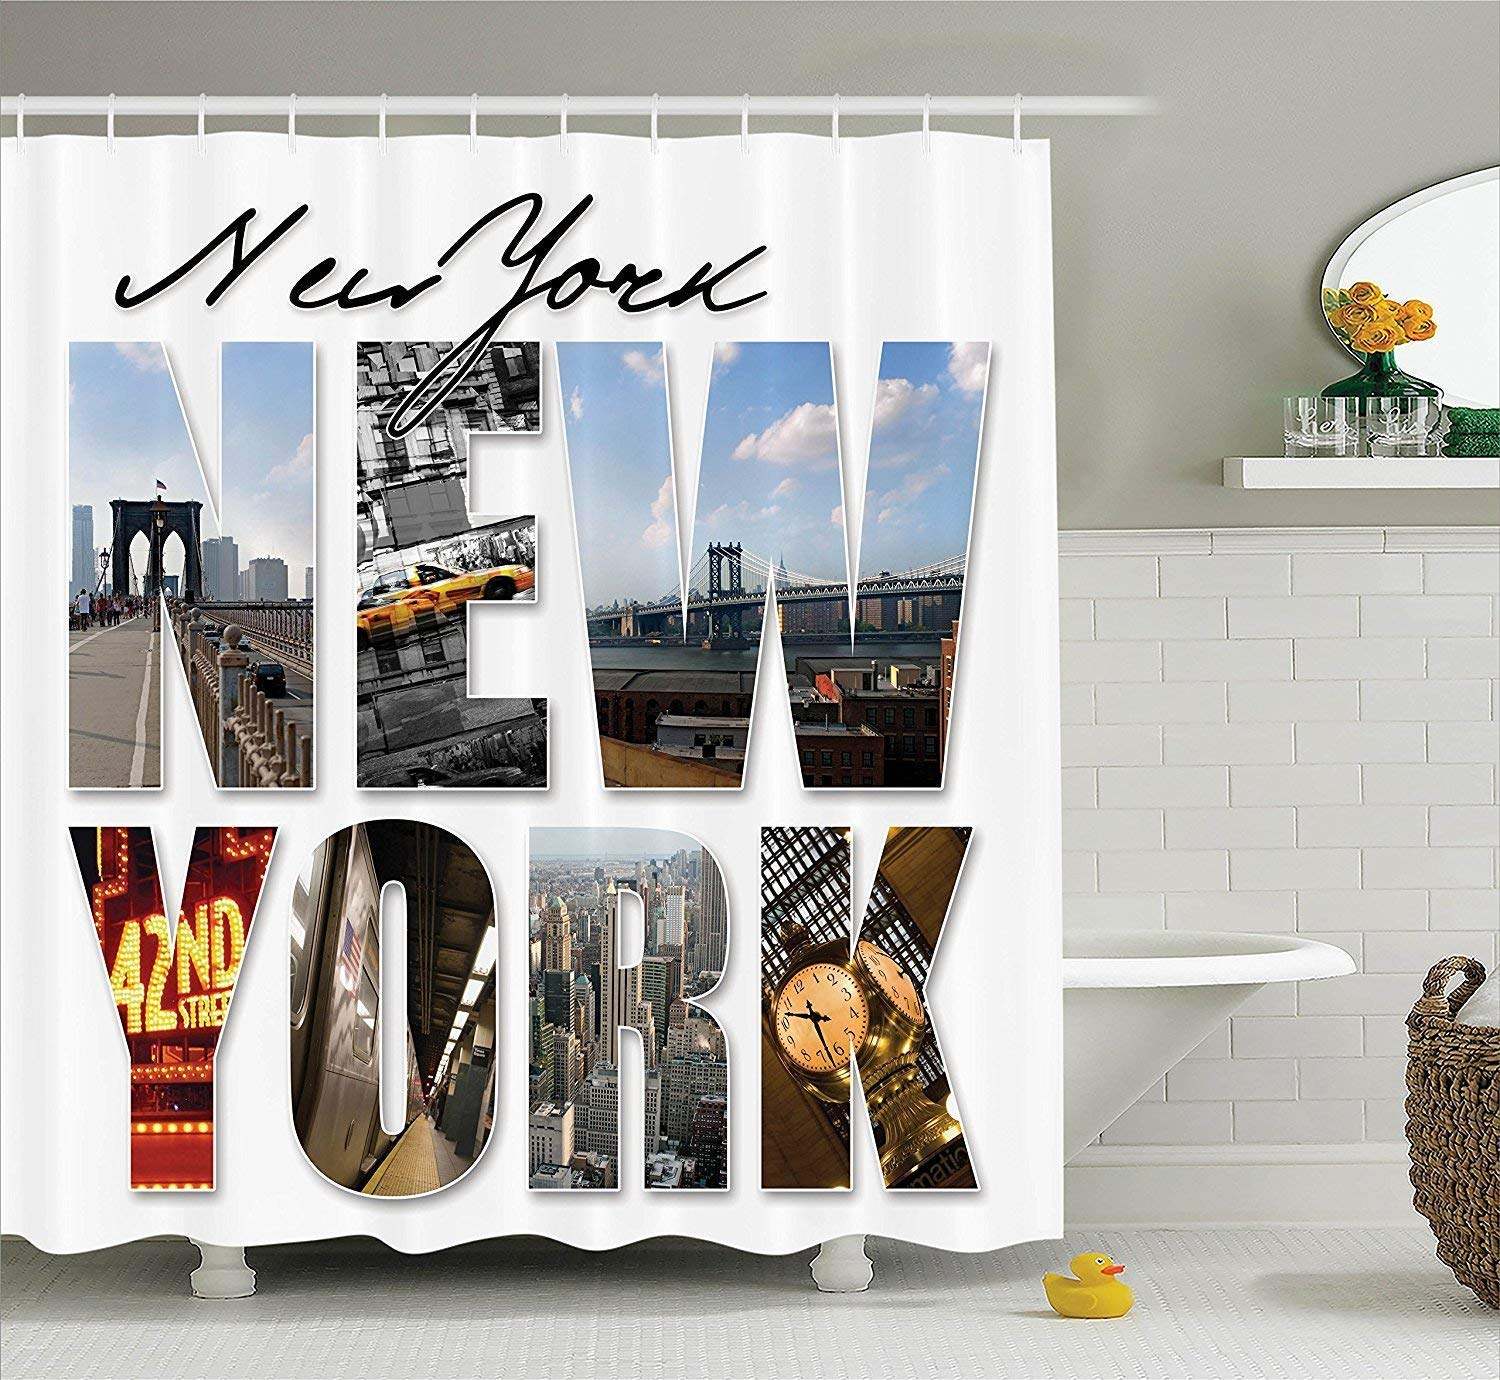 werert NYC Decor Decor Decor Shower Curtain Set, New York City Themed Collage Featuring with Different Areas of The Big Apple Manhattan Scenery, Bathroom Accessories,Multi 60 X 72 bc9888